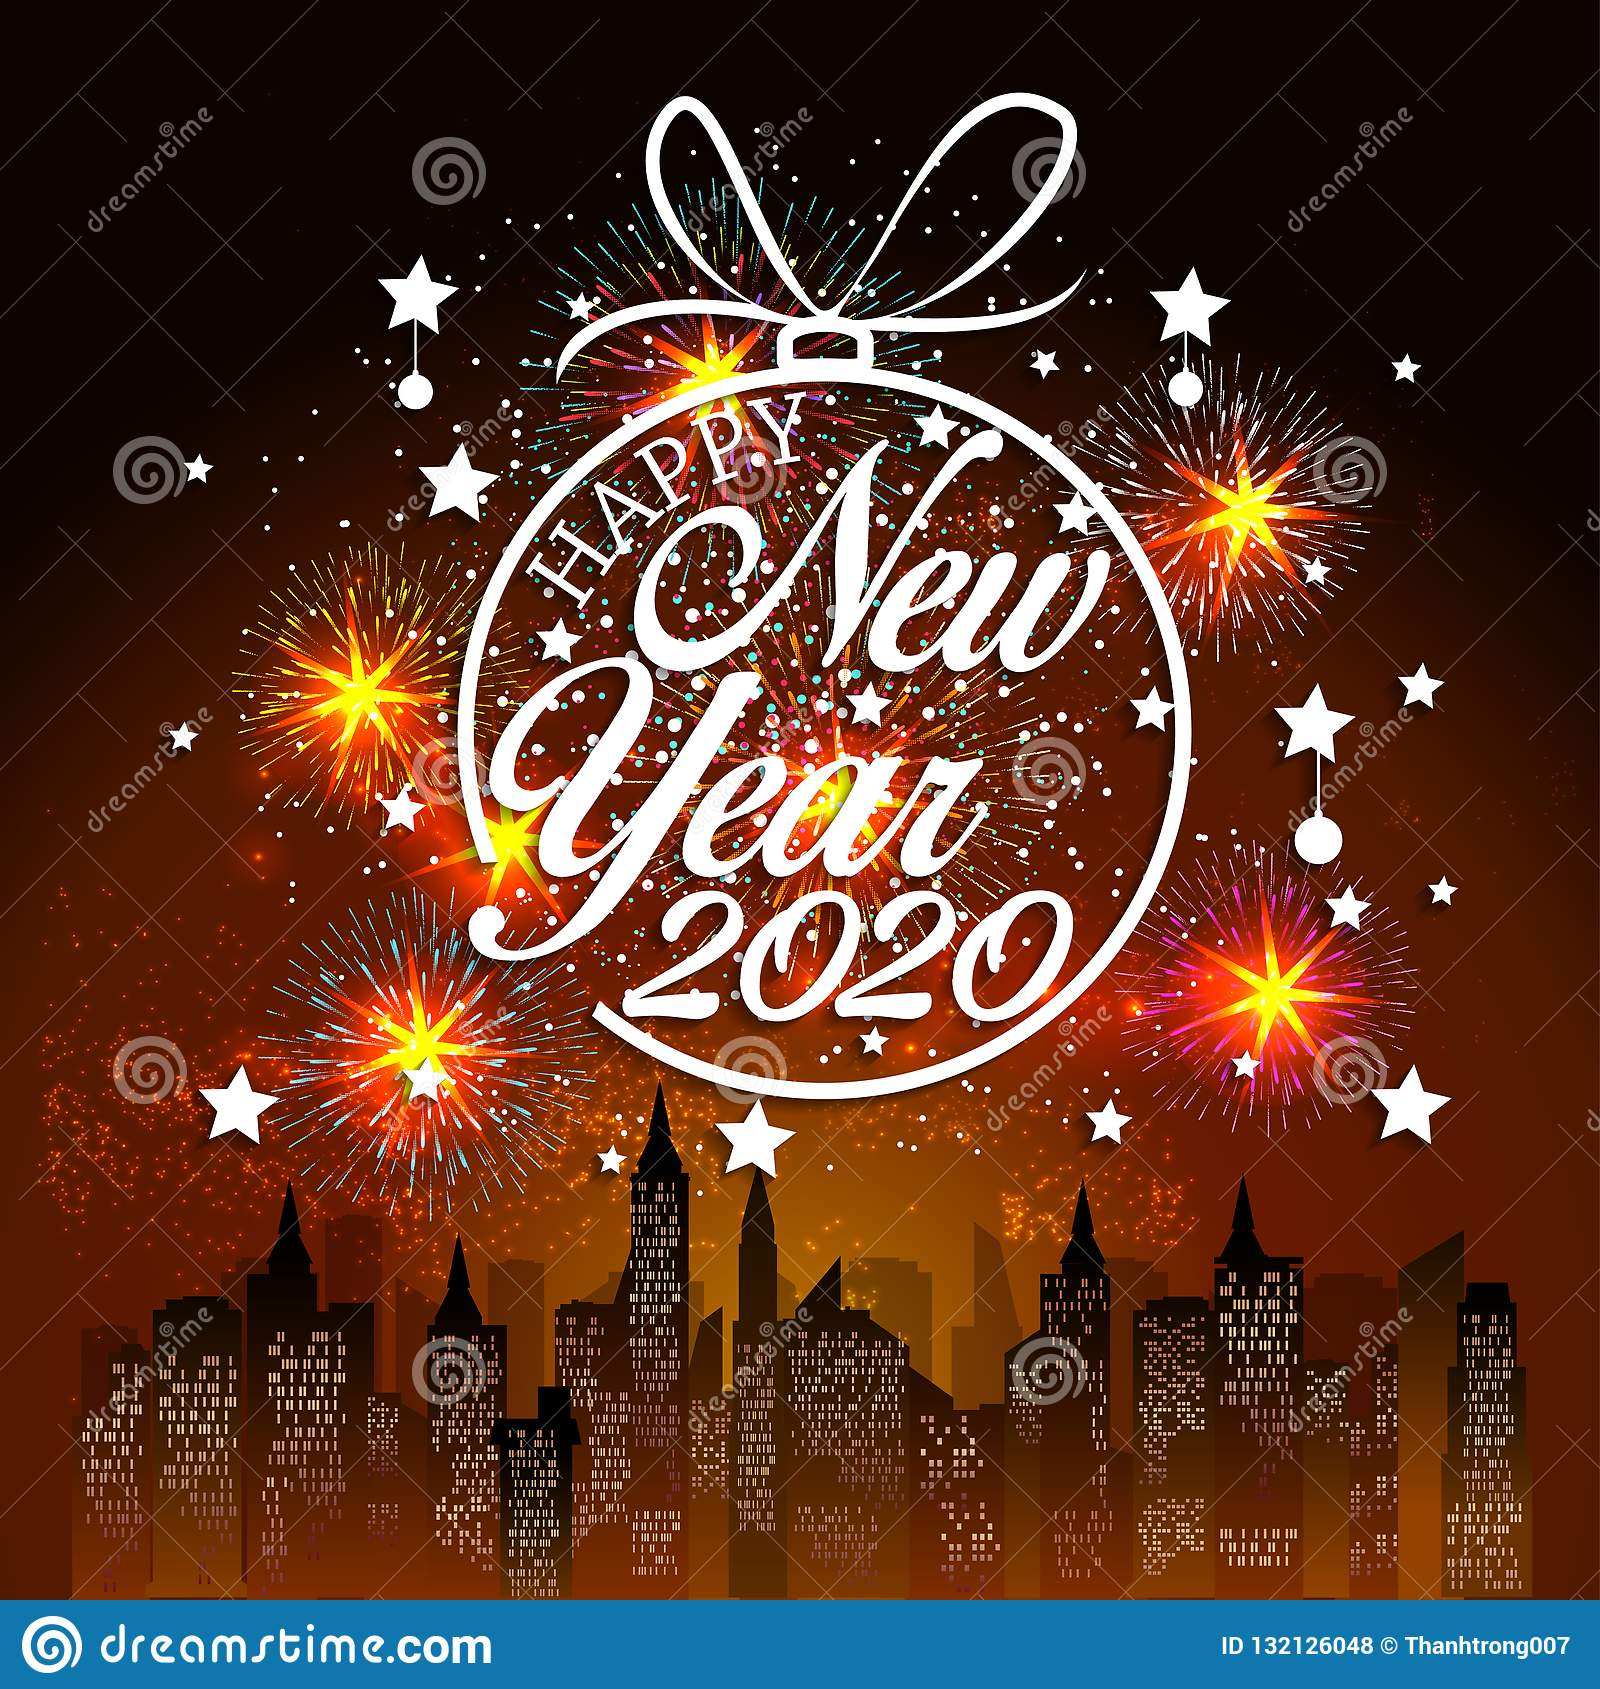 Happy New Year 2020 Background With Fireworks. Stock Vector